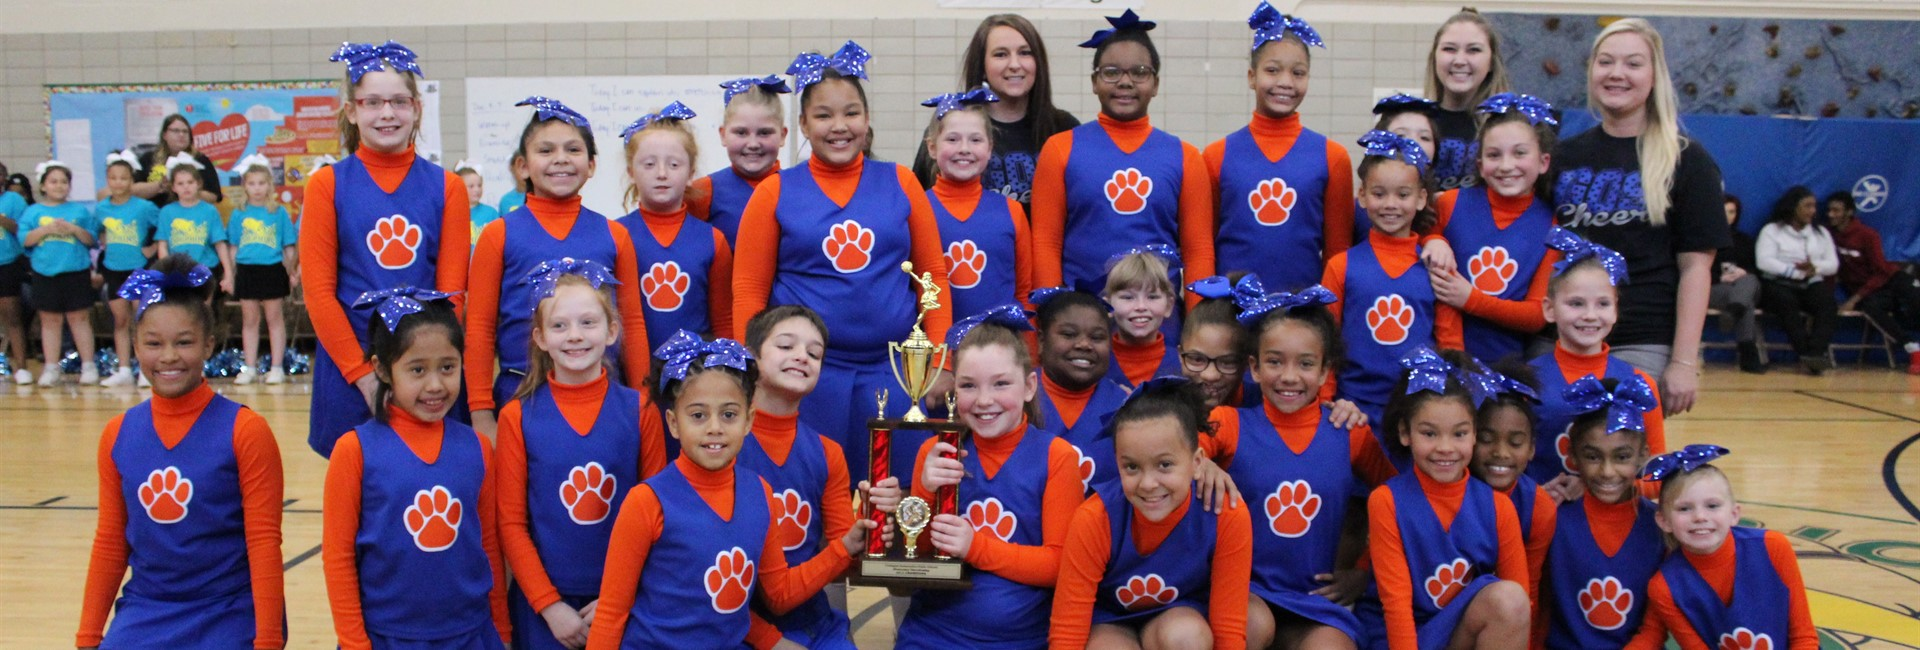 Glenn O. Swing cheerleaders win 1st place in the cheerleading competition.